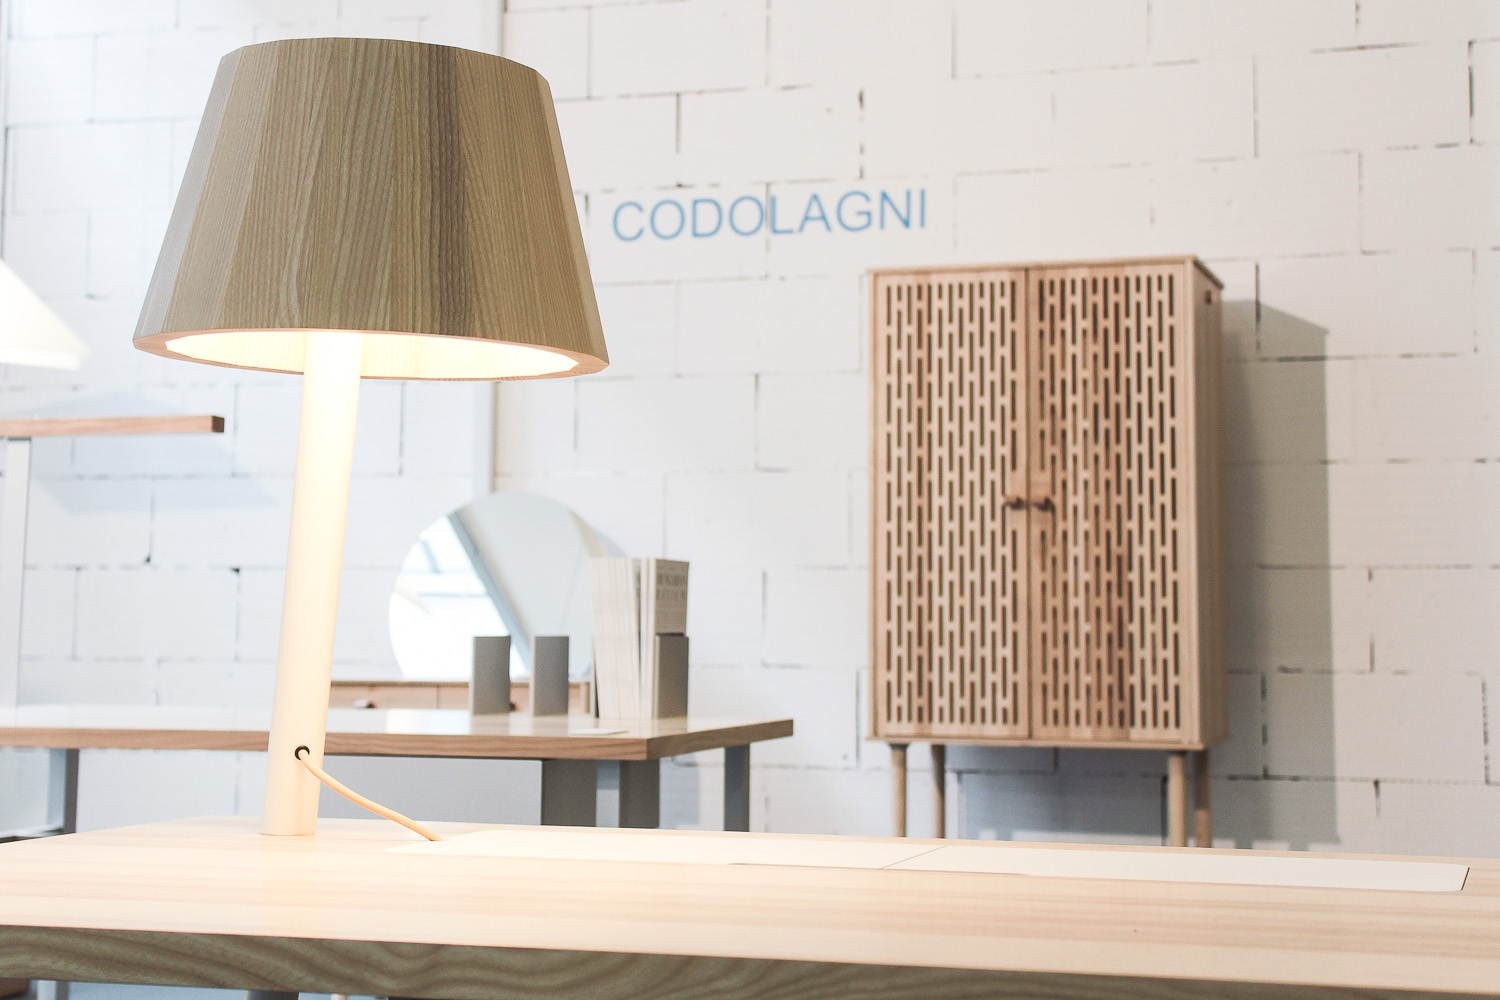 Codolagni on design PLUS-2